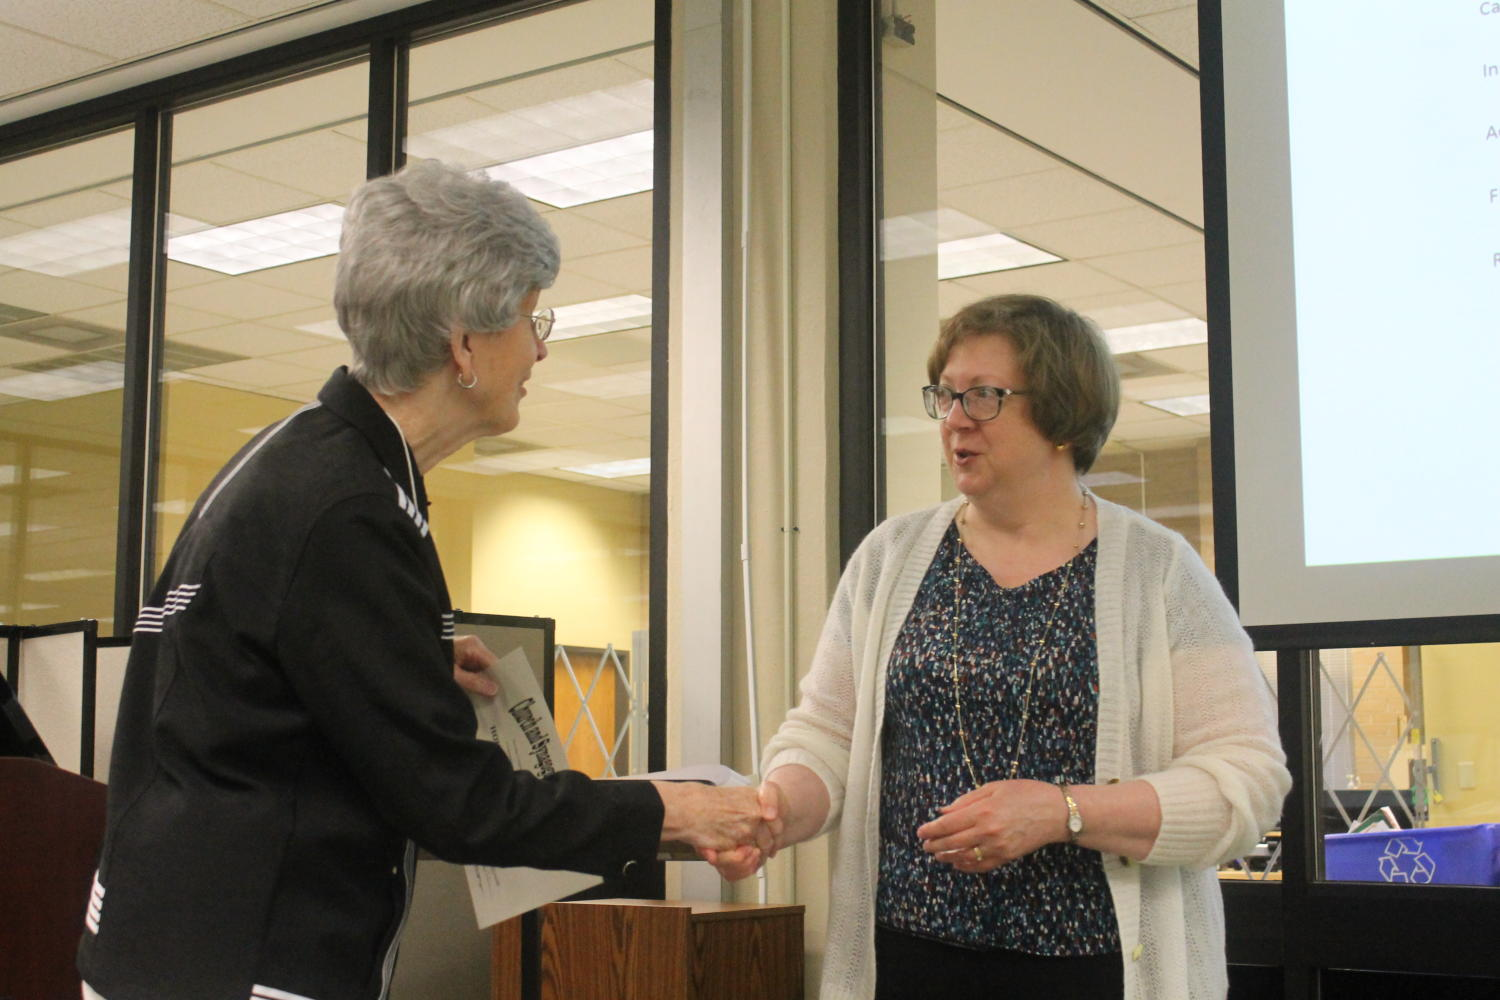 [Jane Hope shaking hands with Marcia Trauernicht], Photograph of Jane Hope (left) shaking hands with Marcia Trauernicht (right). Trauernicht is congratulating the Houston Texas Chapter on their 30th anniversary which are being represented by Hope as she accepted the certificate. The event took place during the 48th Church and Synagogue Library Association conference held at Willis Library at the University of North Texas in Denton, Texas.,